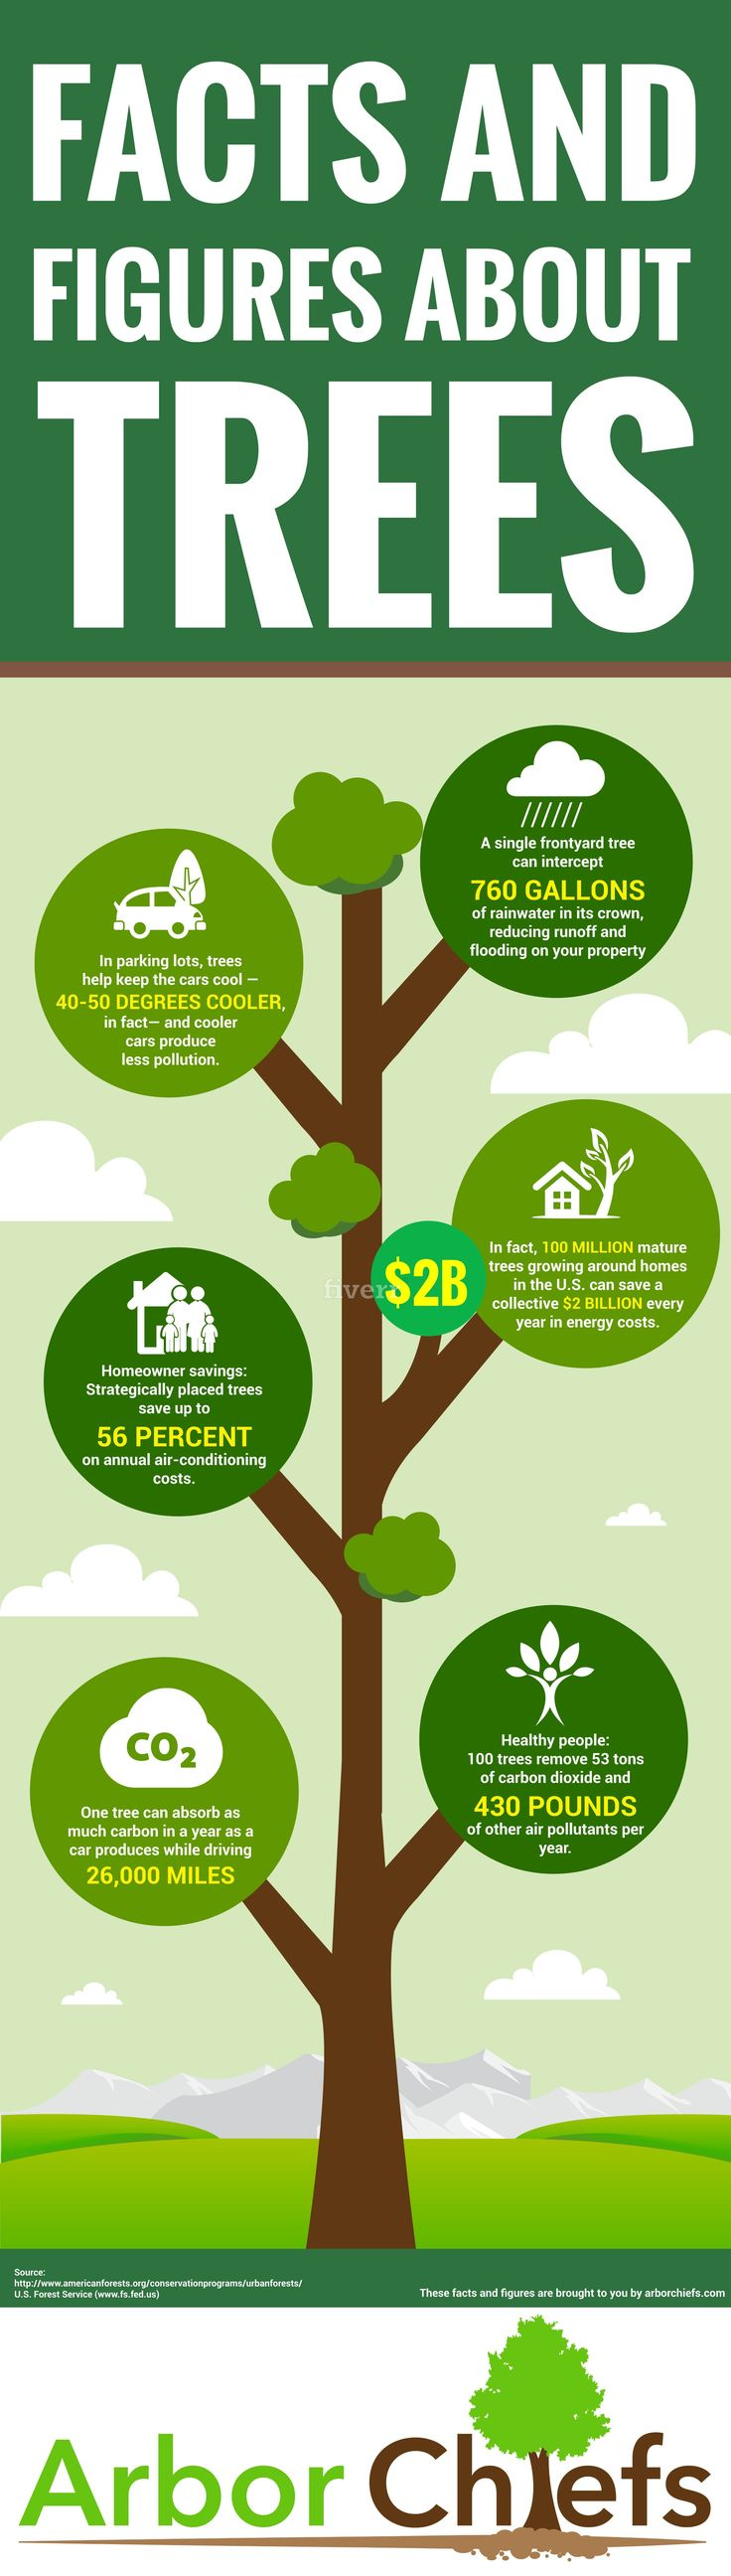 Amazing Facts and Figures About Trees #Infographic